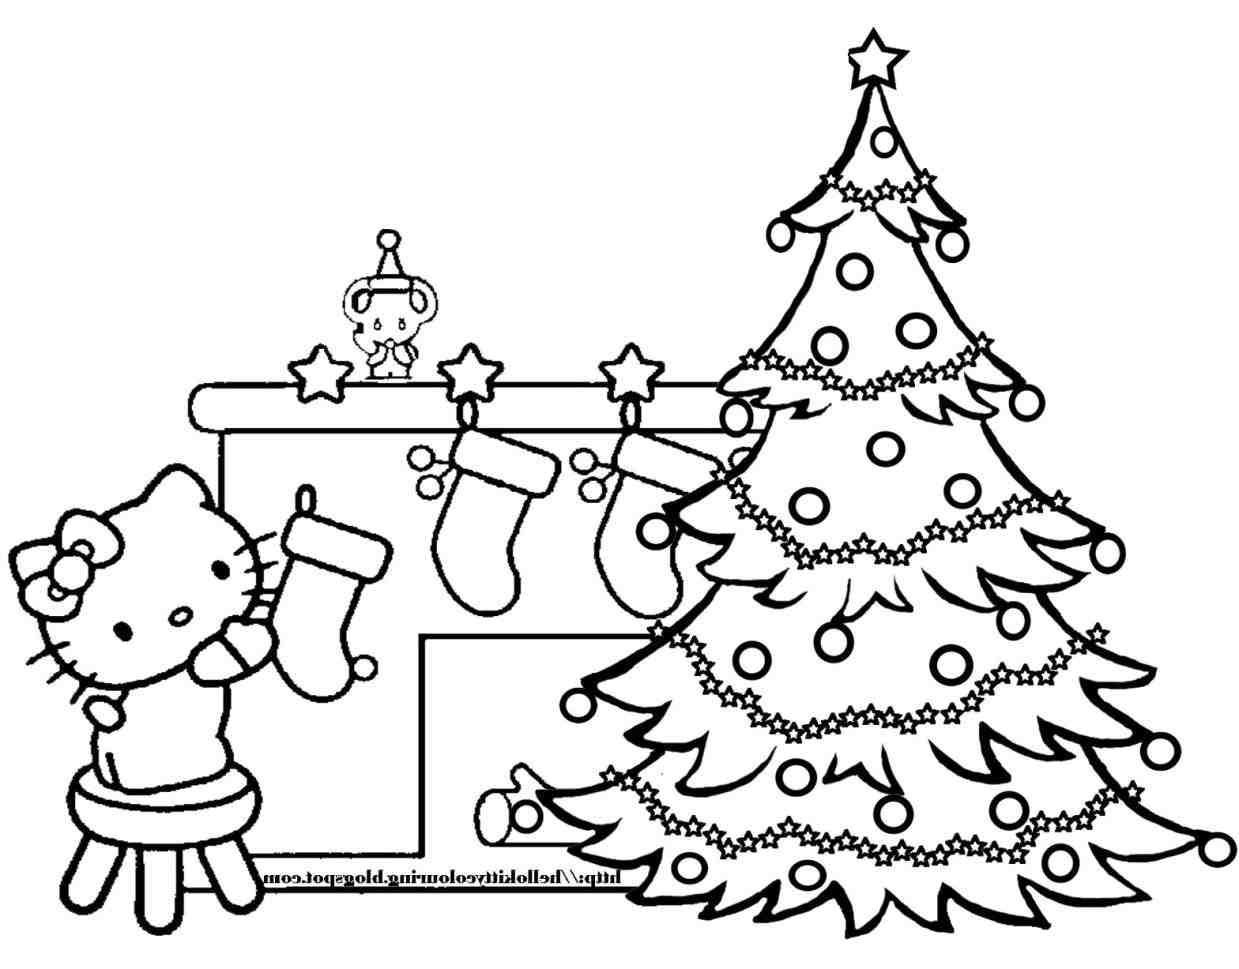 1239x969 Christmas Tree Drawing 2017 Christmas Tree Drawings Free